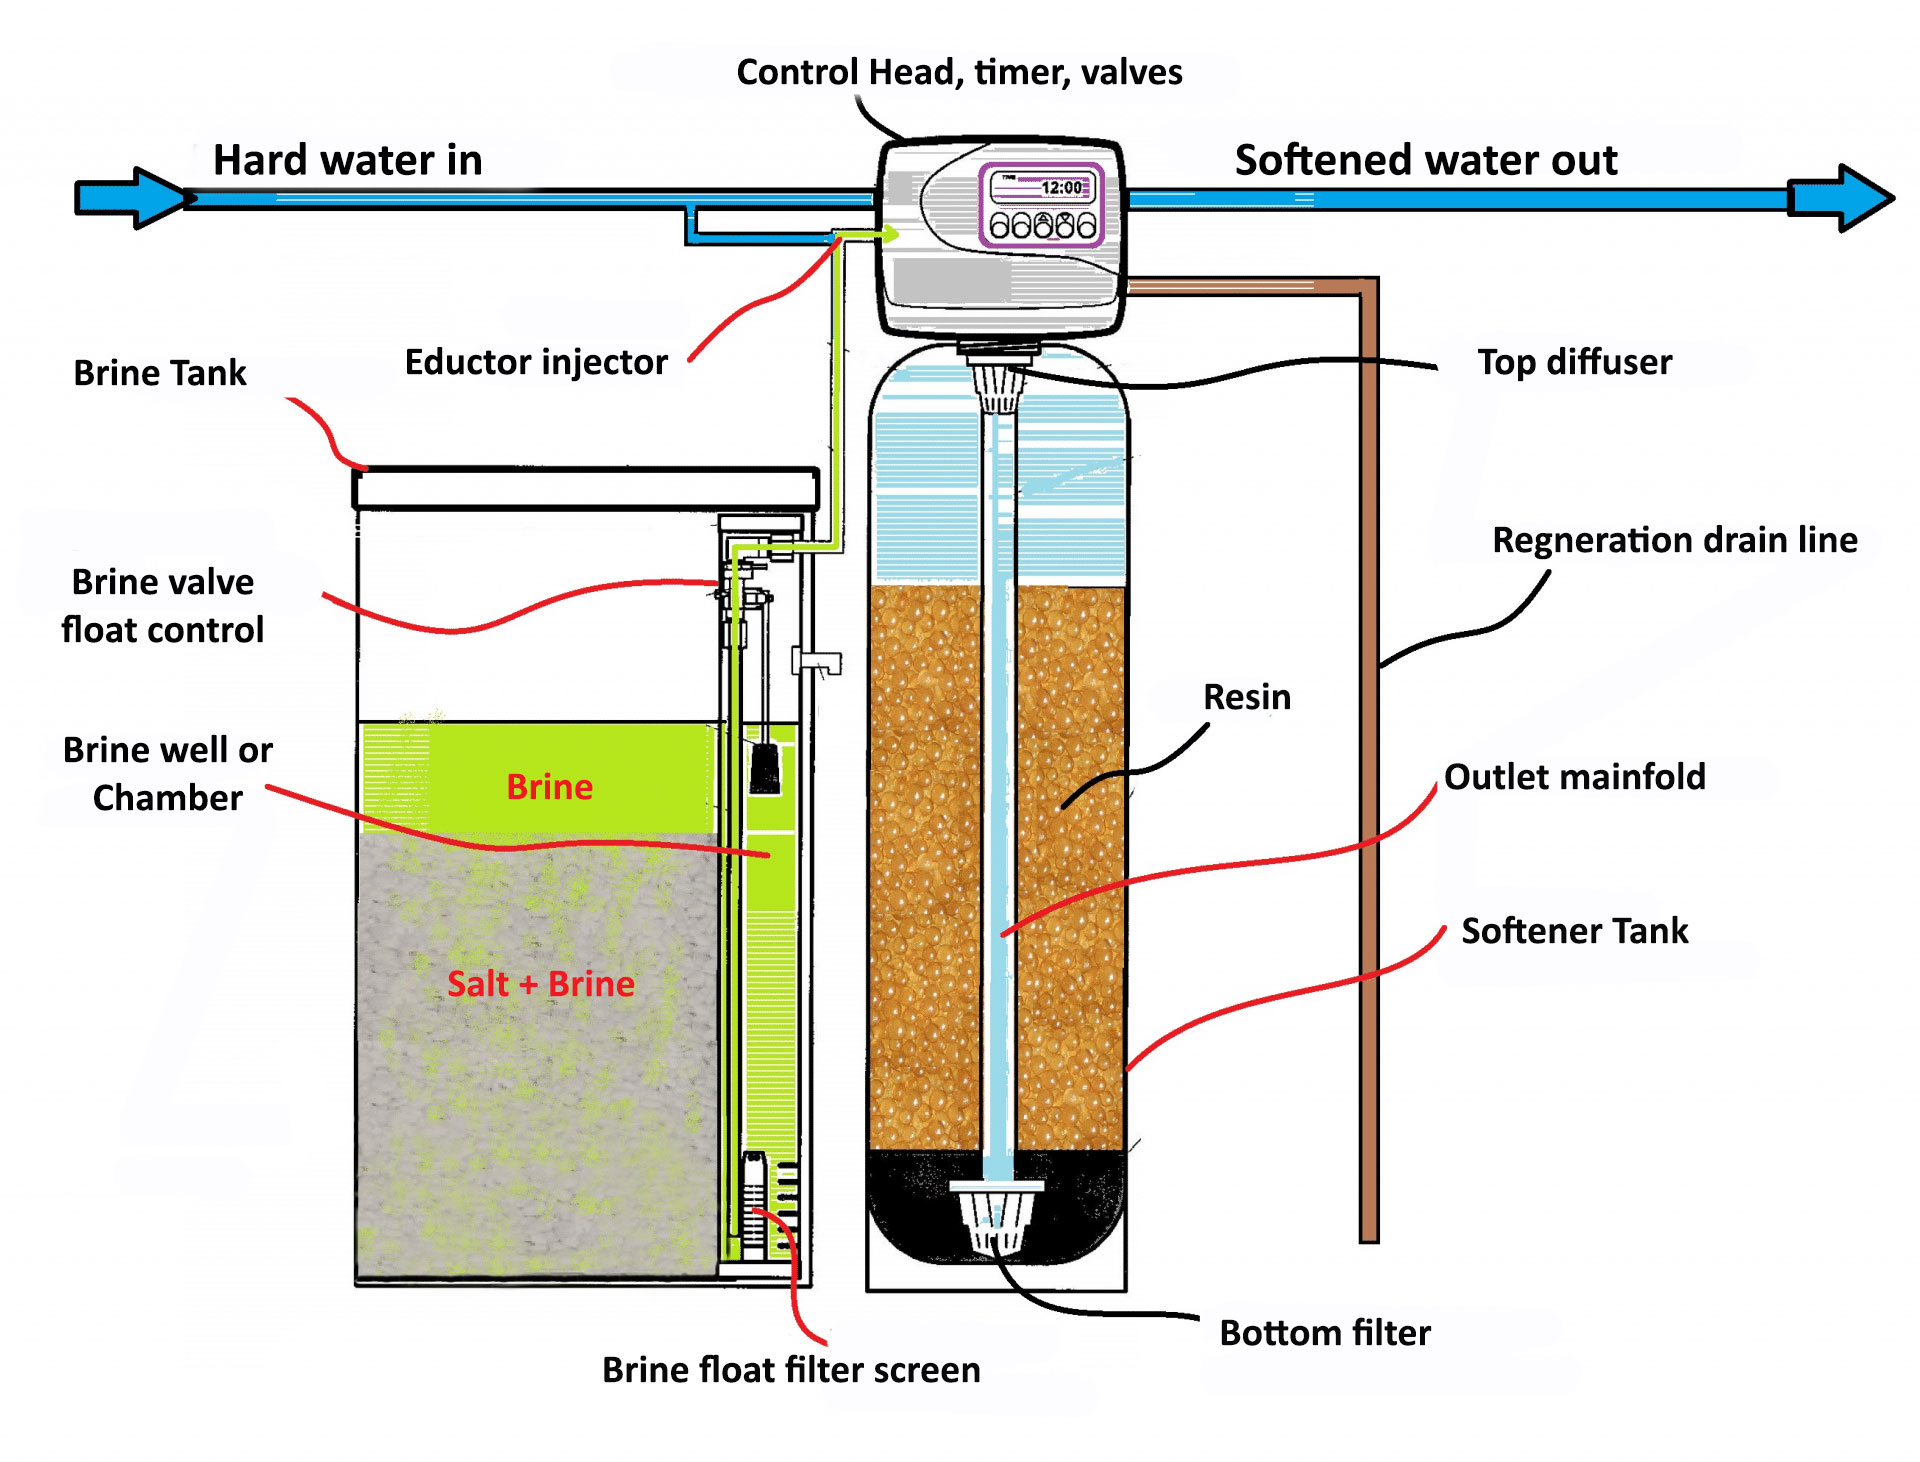 Components of a water softener system